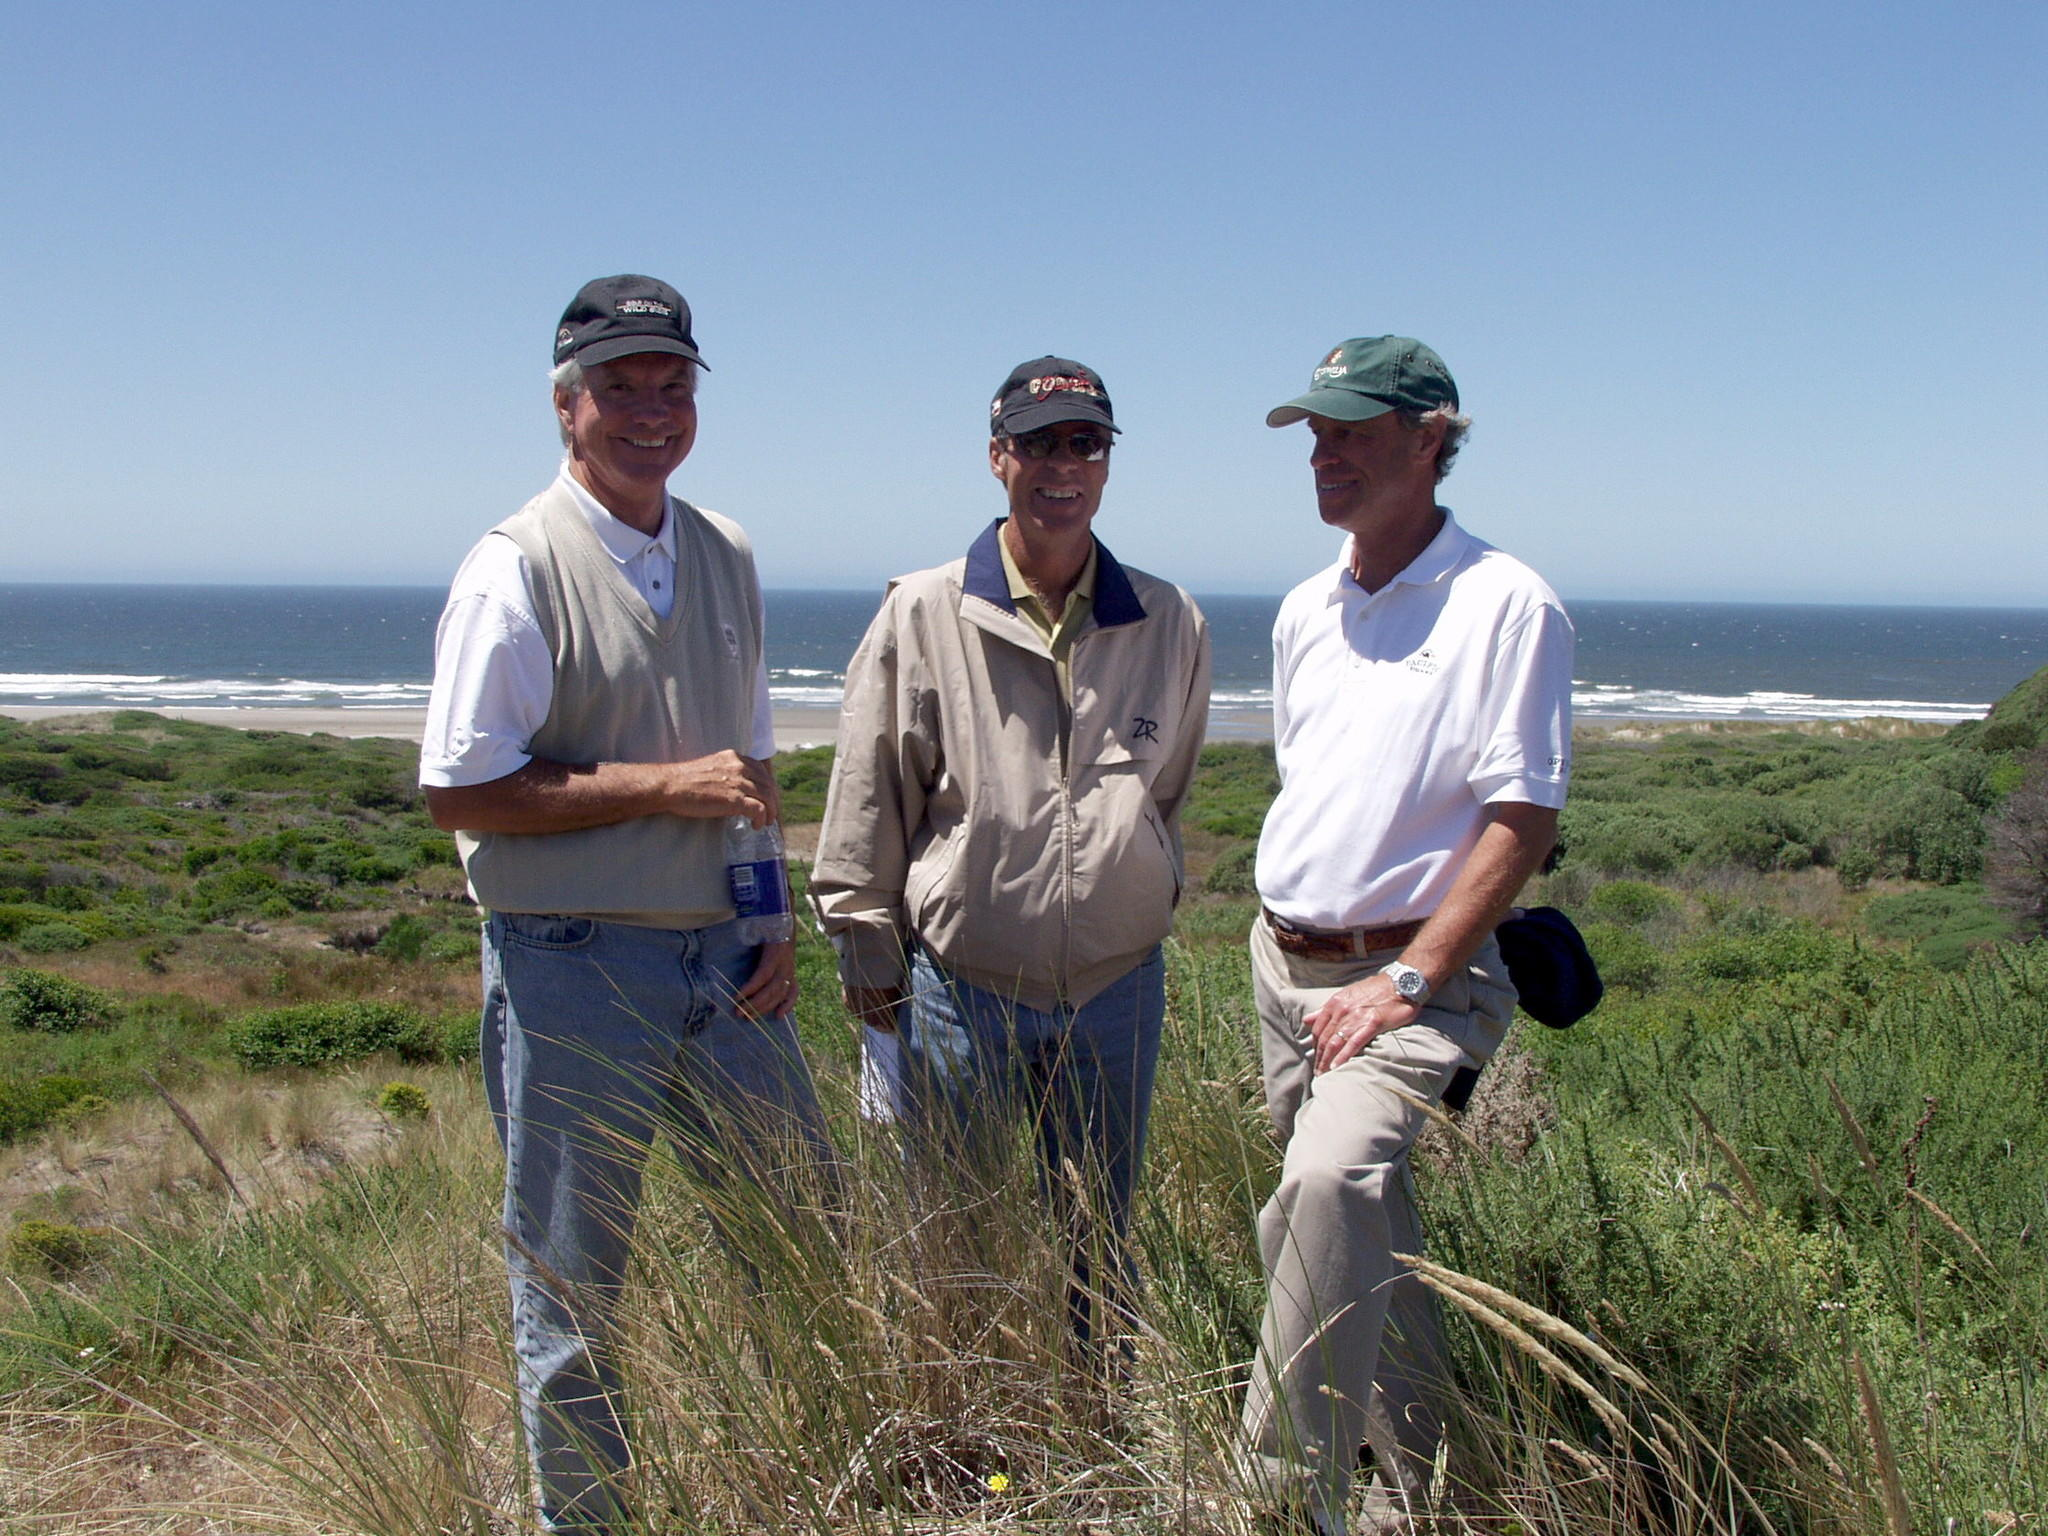 Sand Valley golf course architects Bill Coore and Ben Crenshaw, plus developer Mike Keiser.